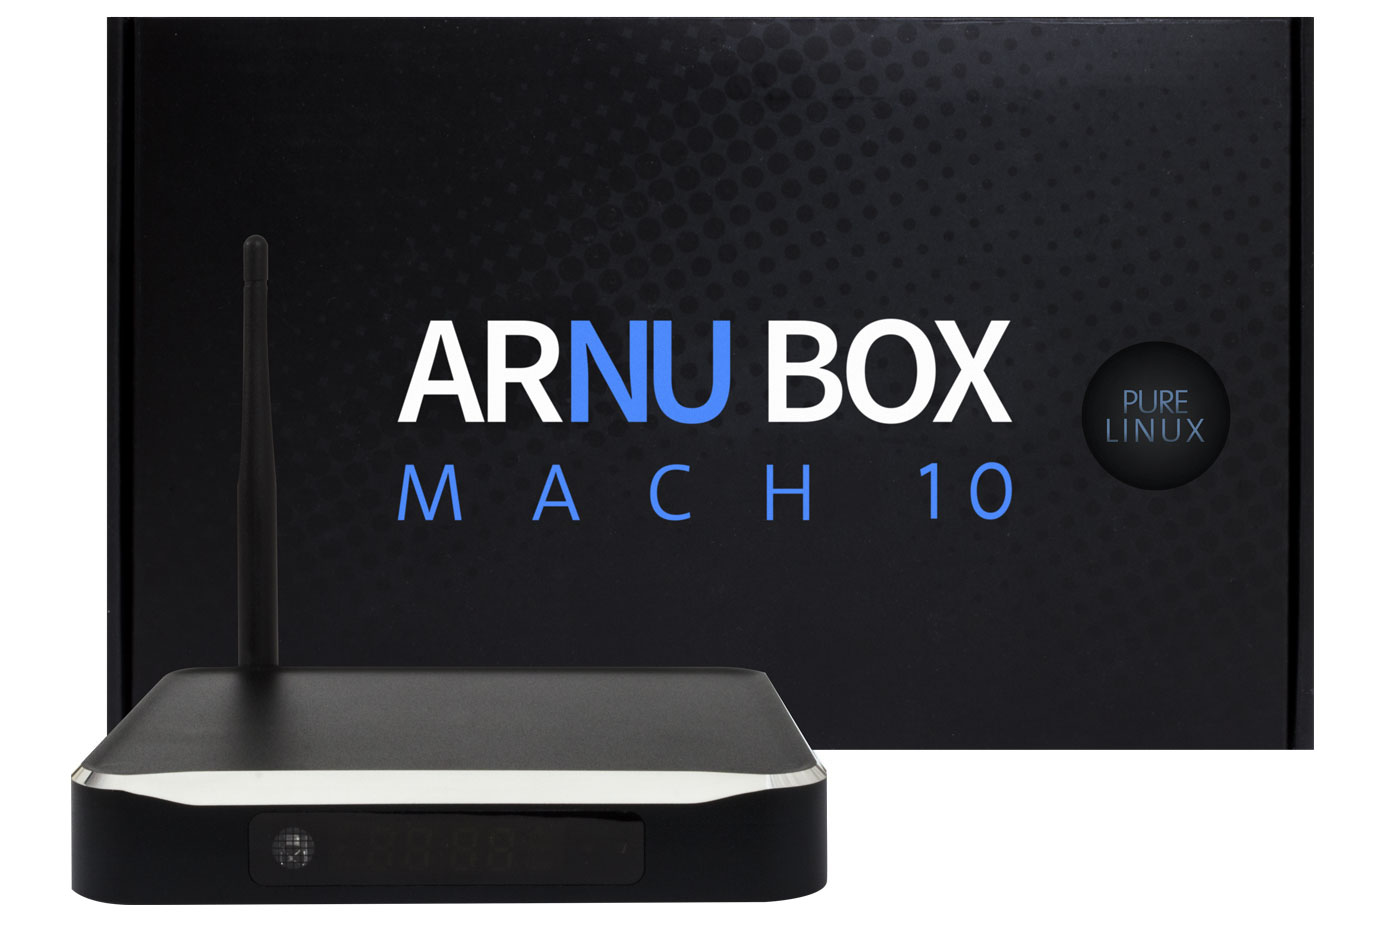 Arnu Box Announces The First Pure Linux Kodi 15 0 Isengard Powered Set Top Boxes